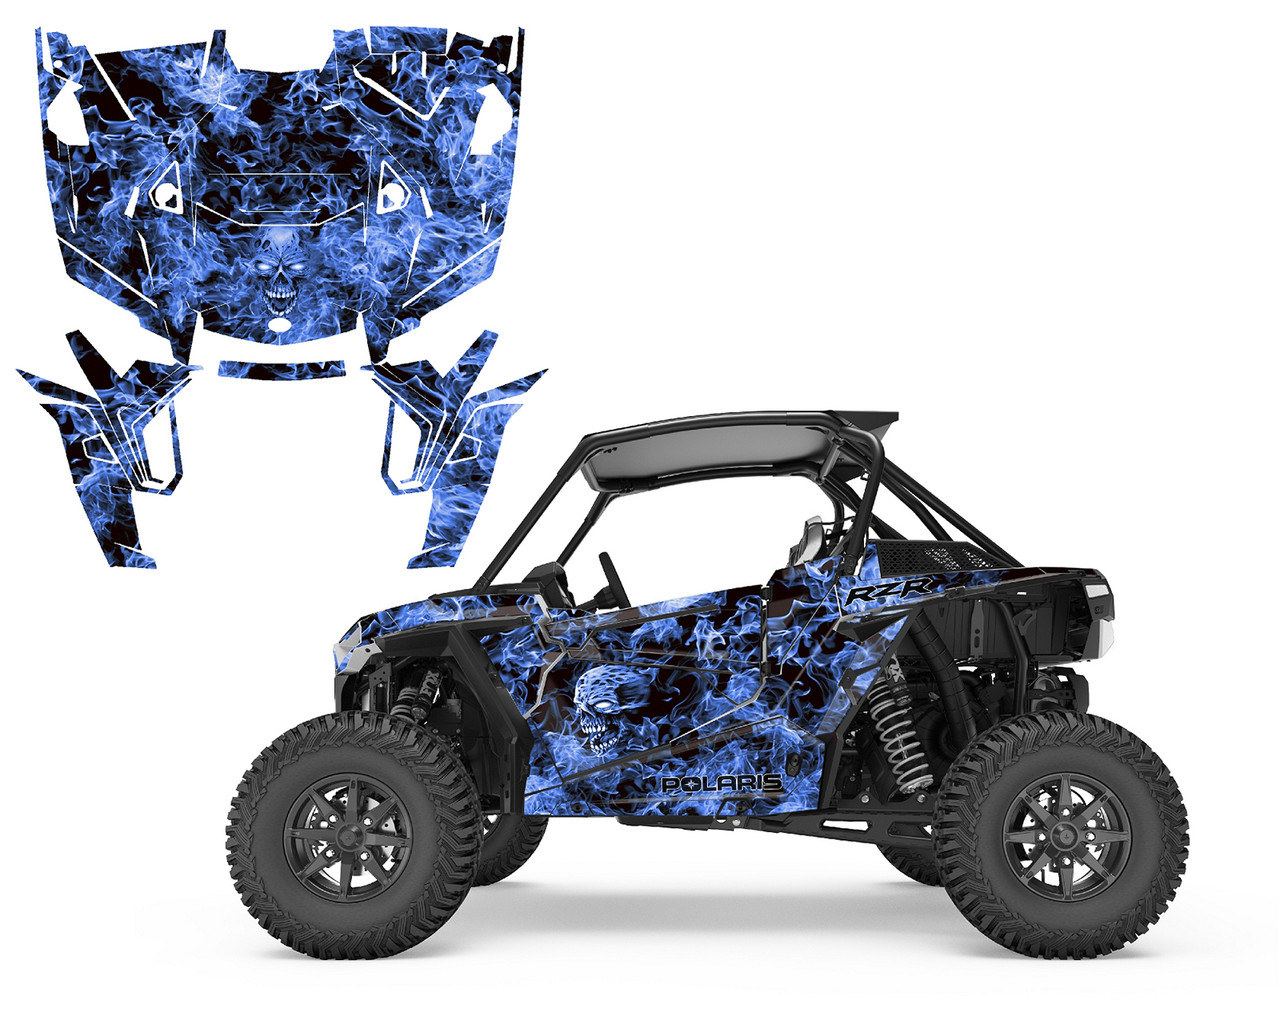 2019 RZR-1000 Turbo S XP Design 9500 Zombie